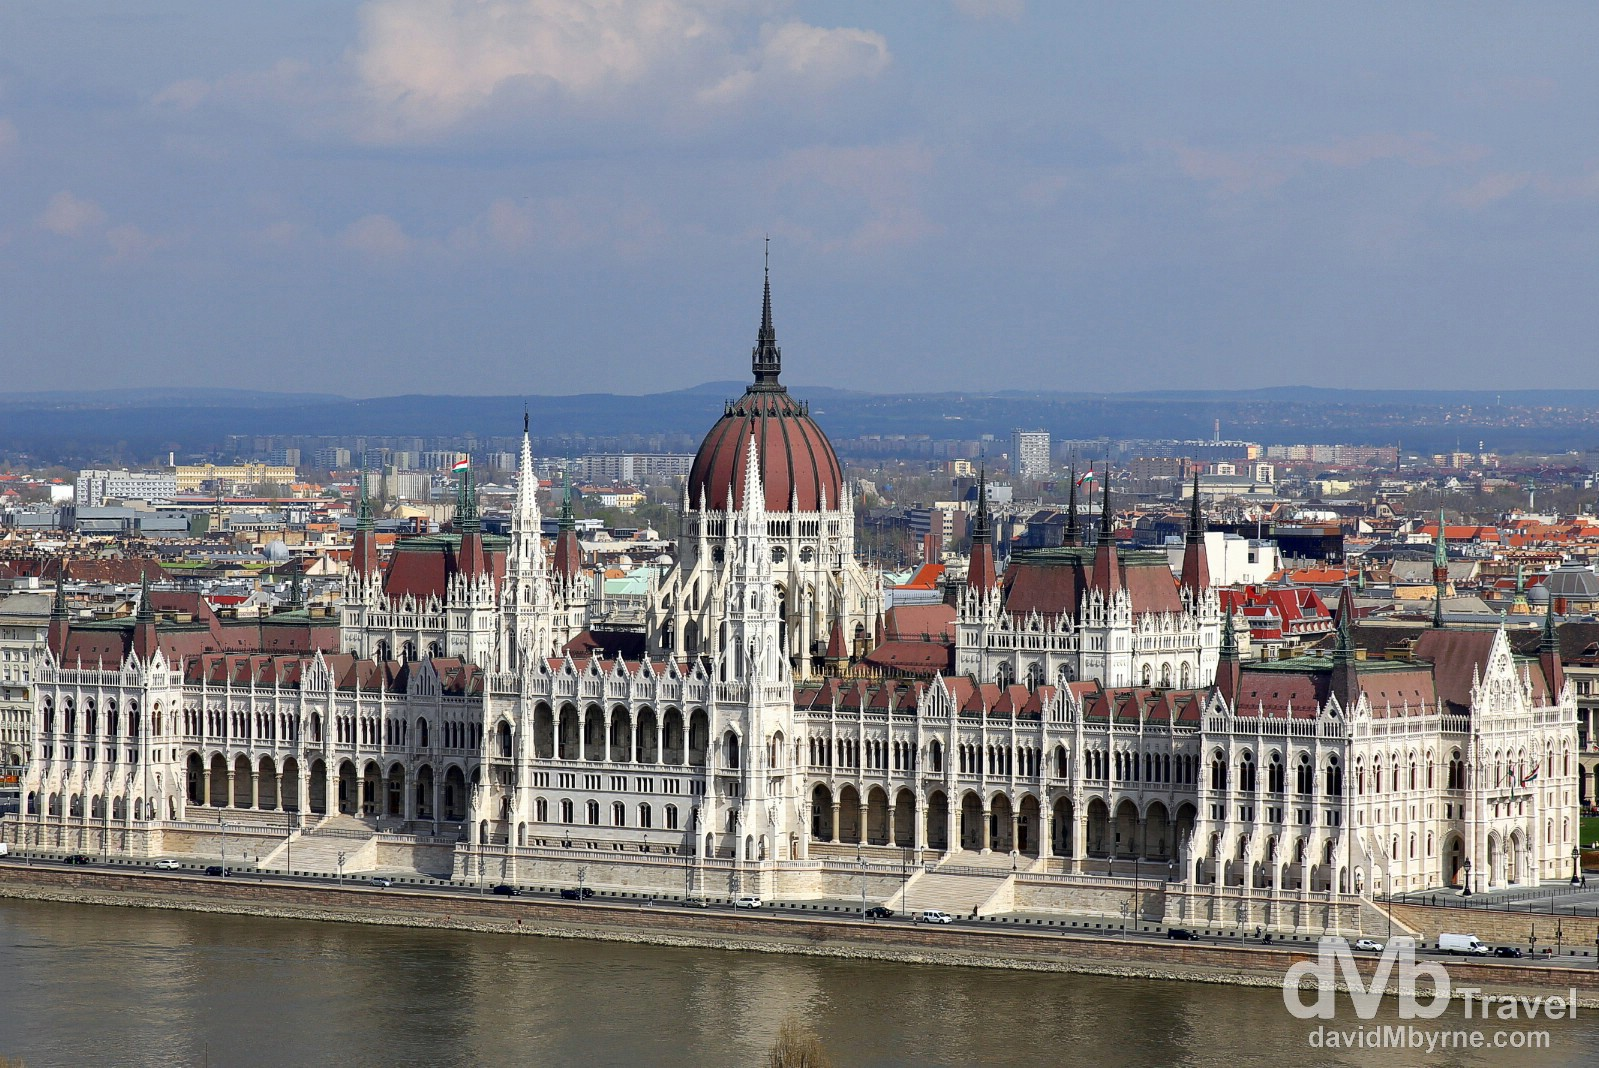 Parliament Building, one of Europe's most fabulous buildings, on the Pest bank of the Danube River as seen from Fishermans Bastion on the hills of Buda. Budapest, Hungary. March 26th, 2014.